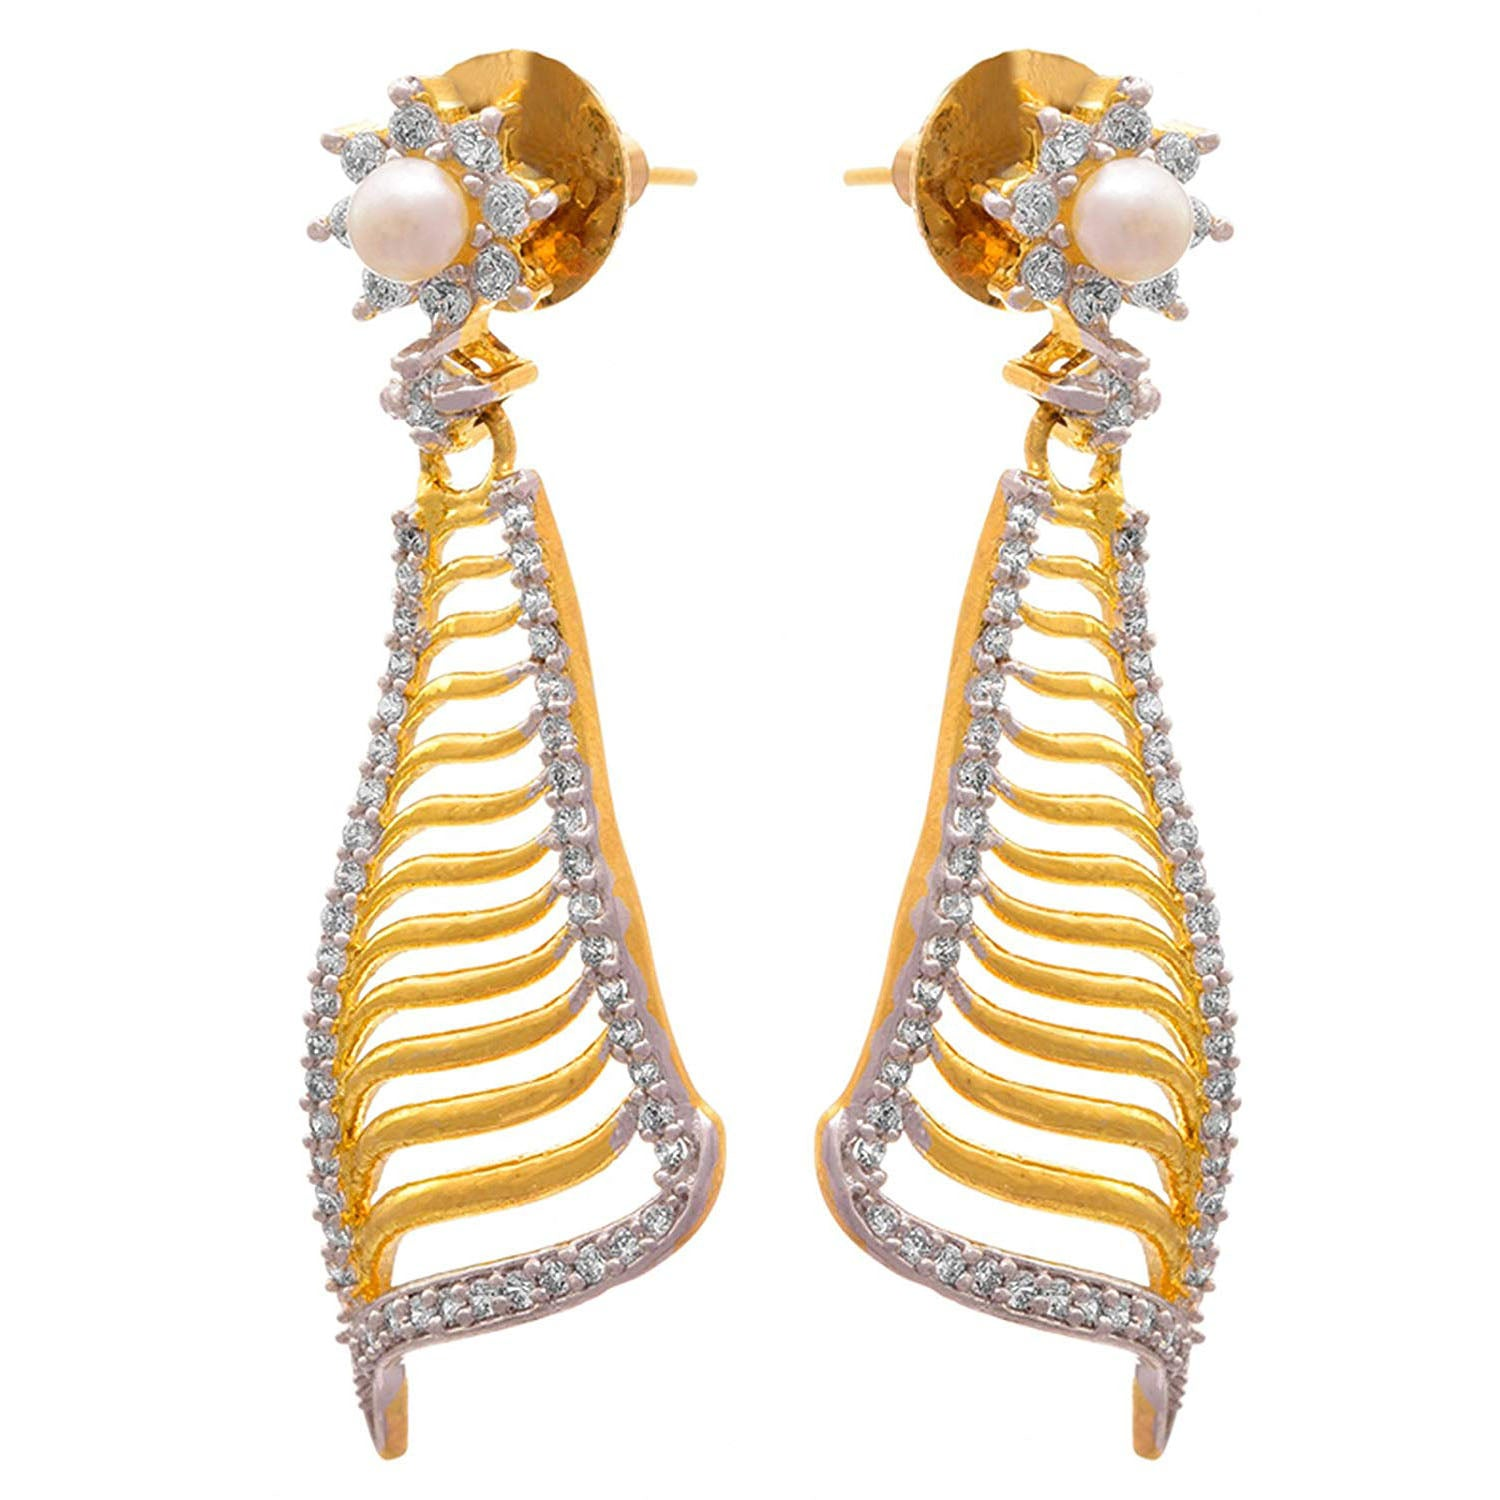 Fusion Ethnic One Gram Gold Plated Cz American Diamonds Pearl Designer Earrings for Women & Girls.